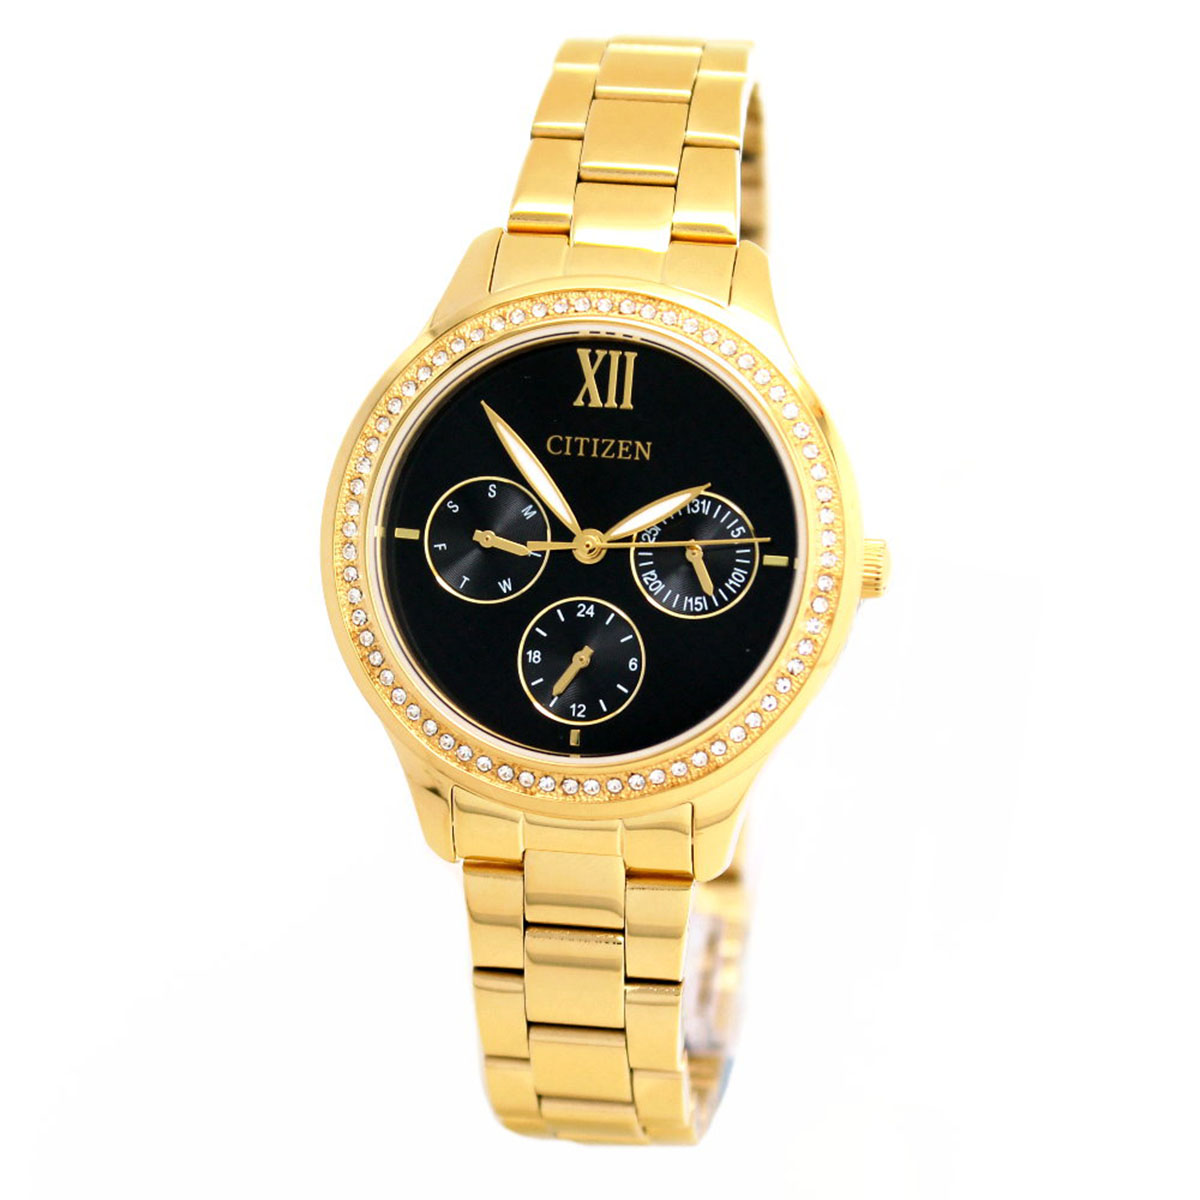 นาฬิกาผู้หญิง Citizen รุ่น ED8152-58E, Swarovski Gold Stainless Steel Analog Dress Watch